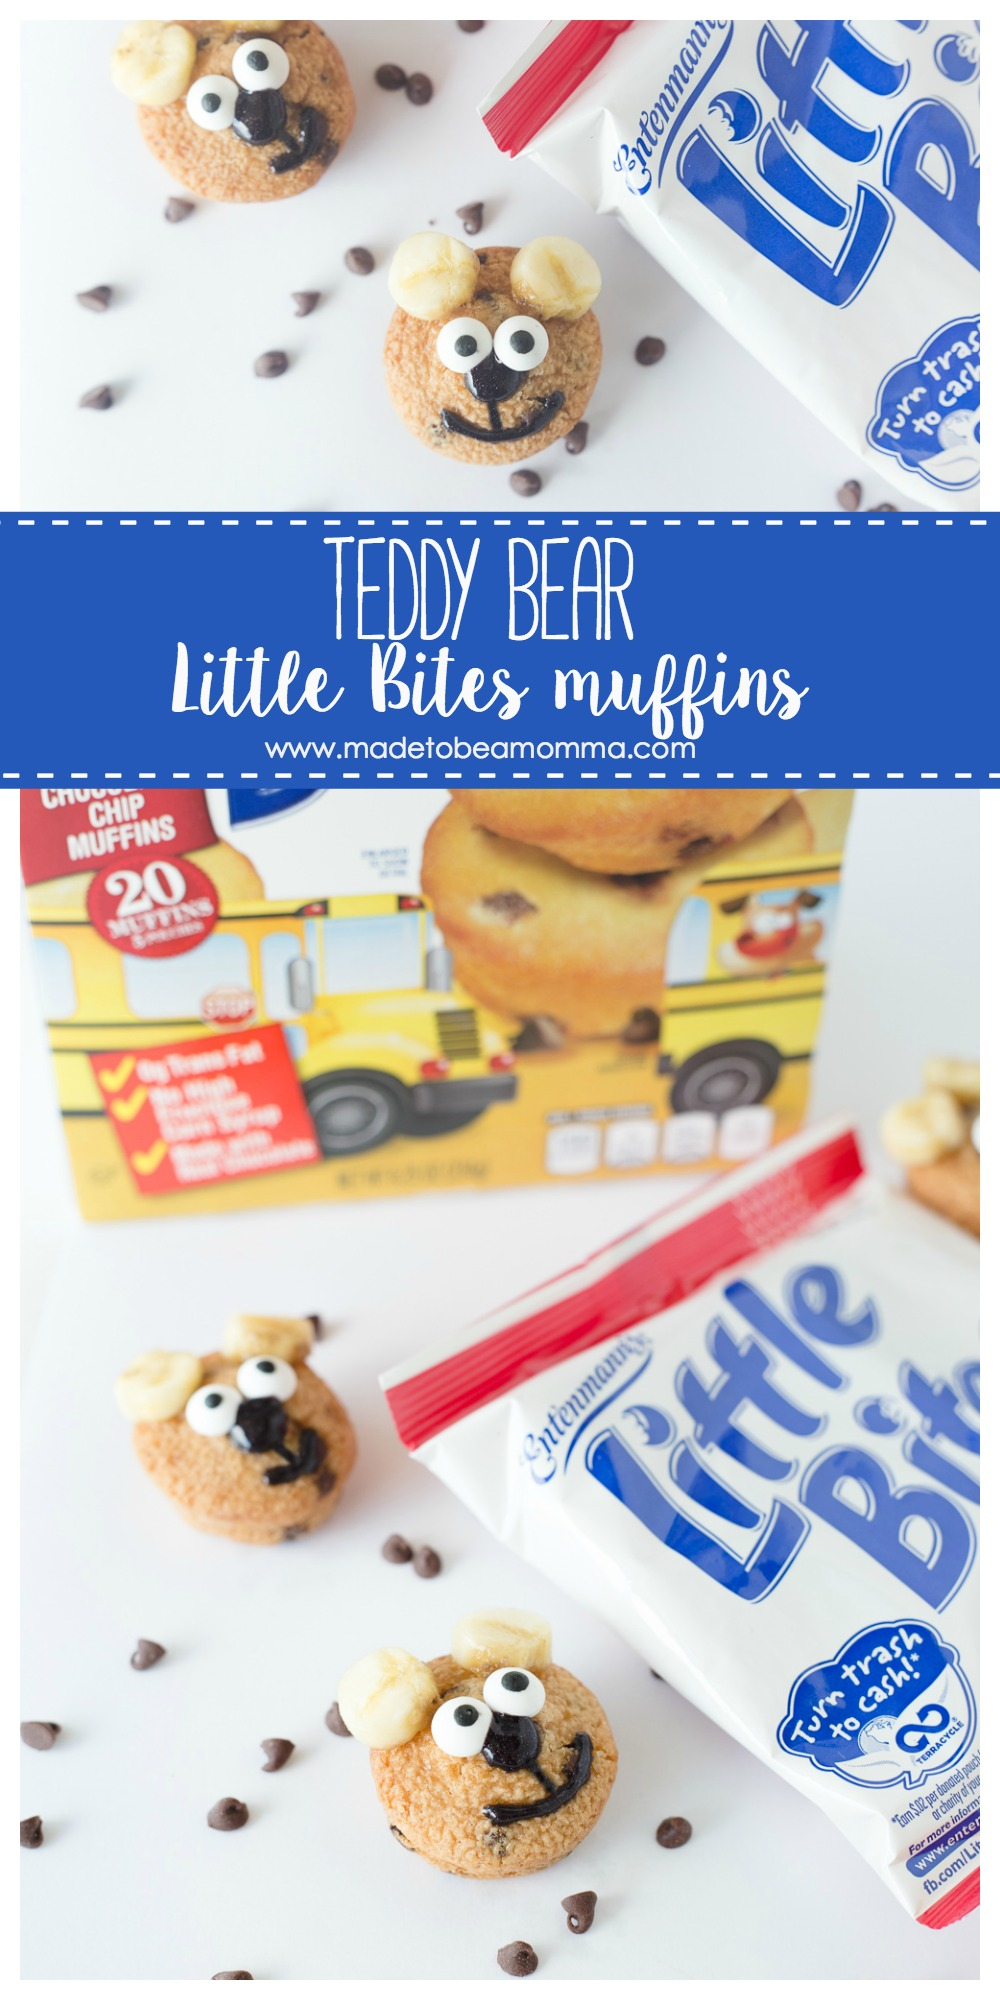 Teddy Bear Little Bites Muffins